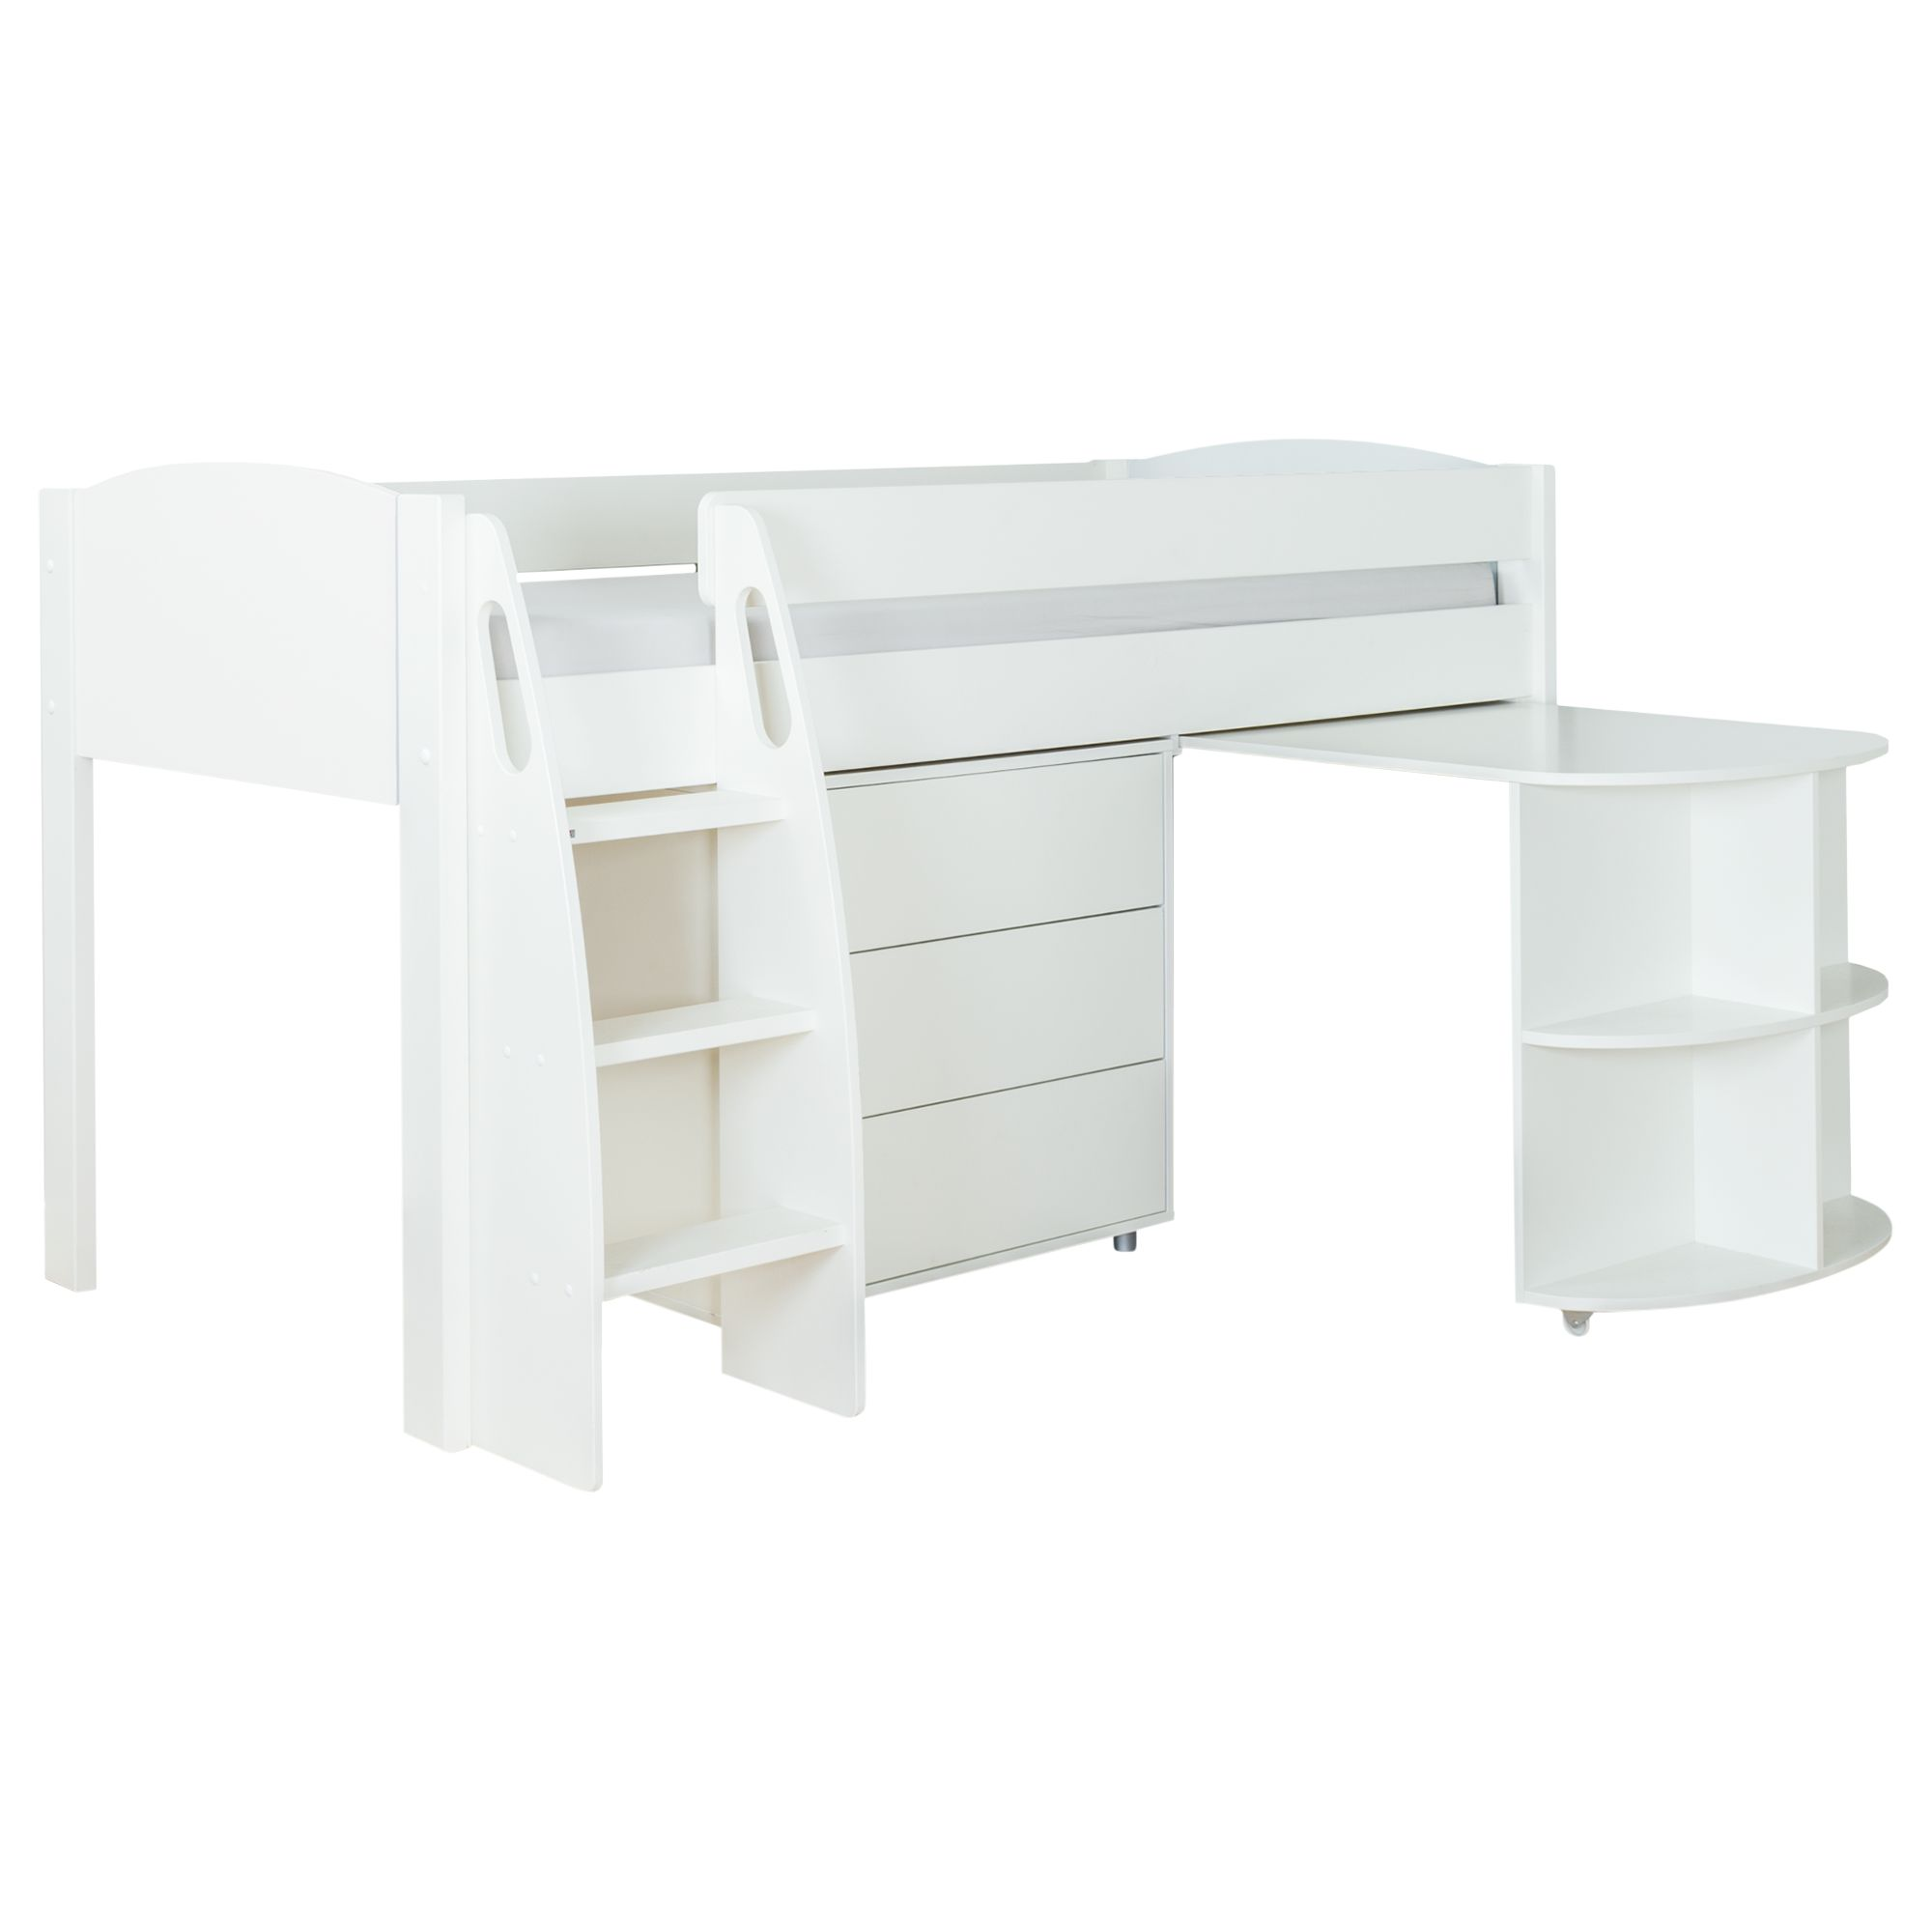 Stompa Stompa Uno S Plus Mid-Sleeper with Pull-Out Desk and 3 Drawer Chest